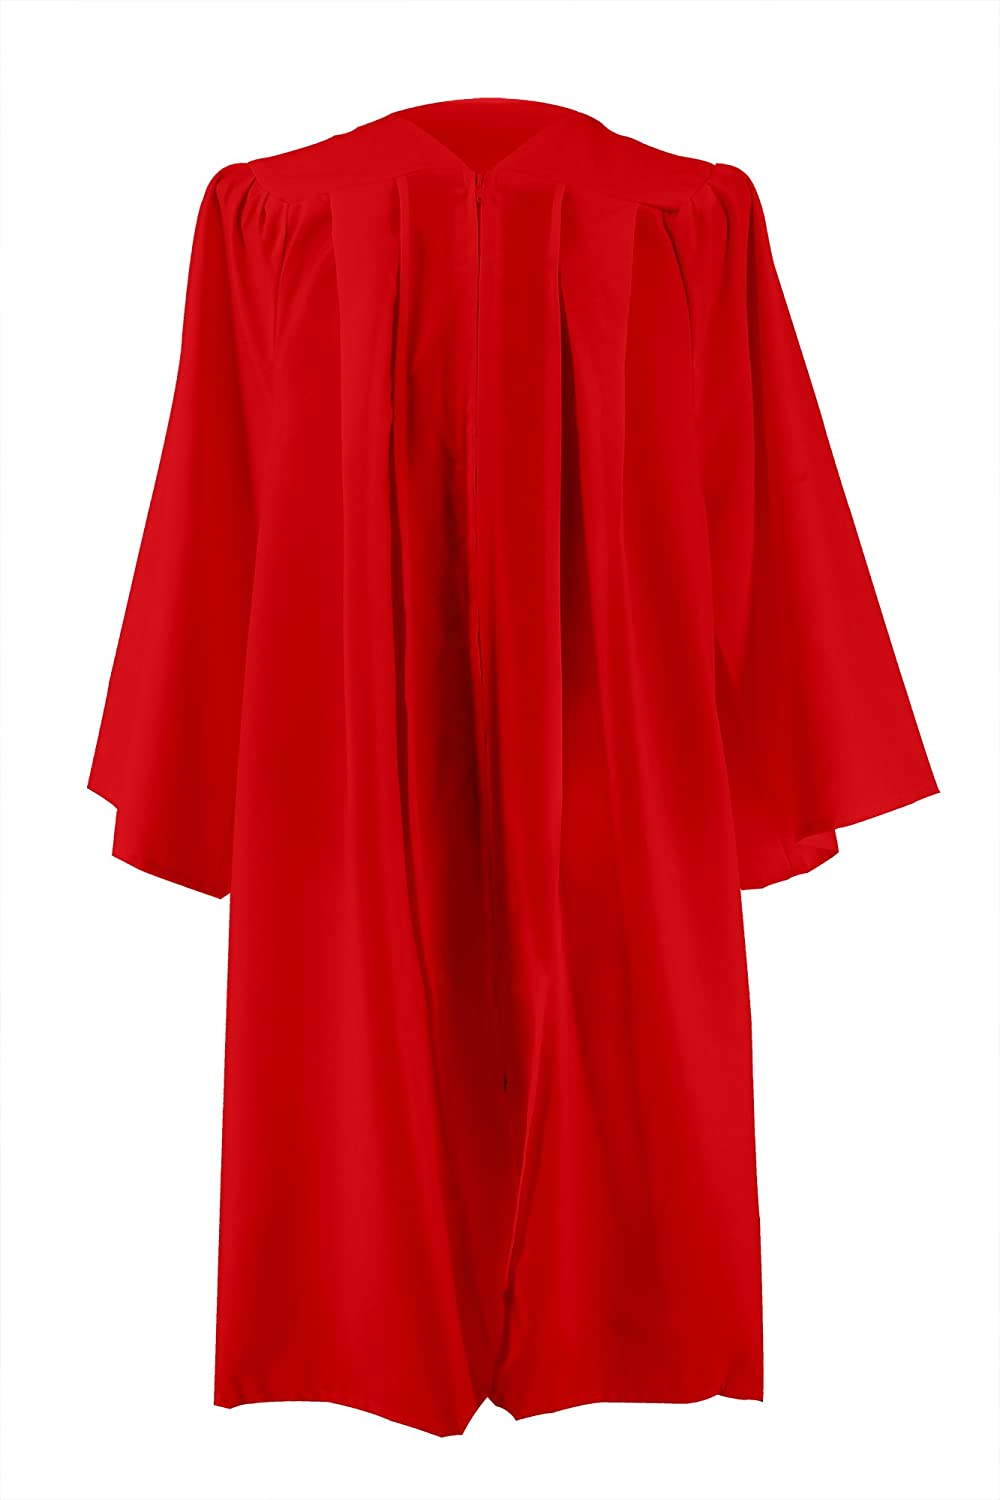 GGS Unisex Adults Matte Confirmation Robes Choir Robes Open Sleeves